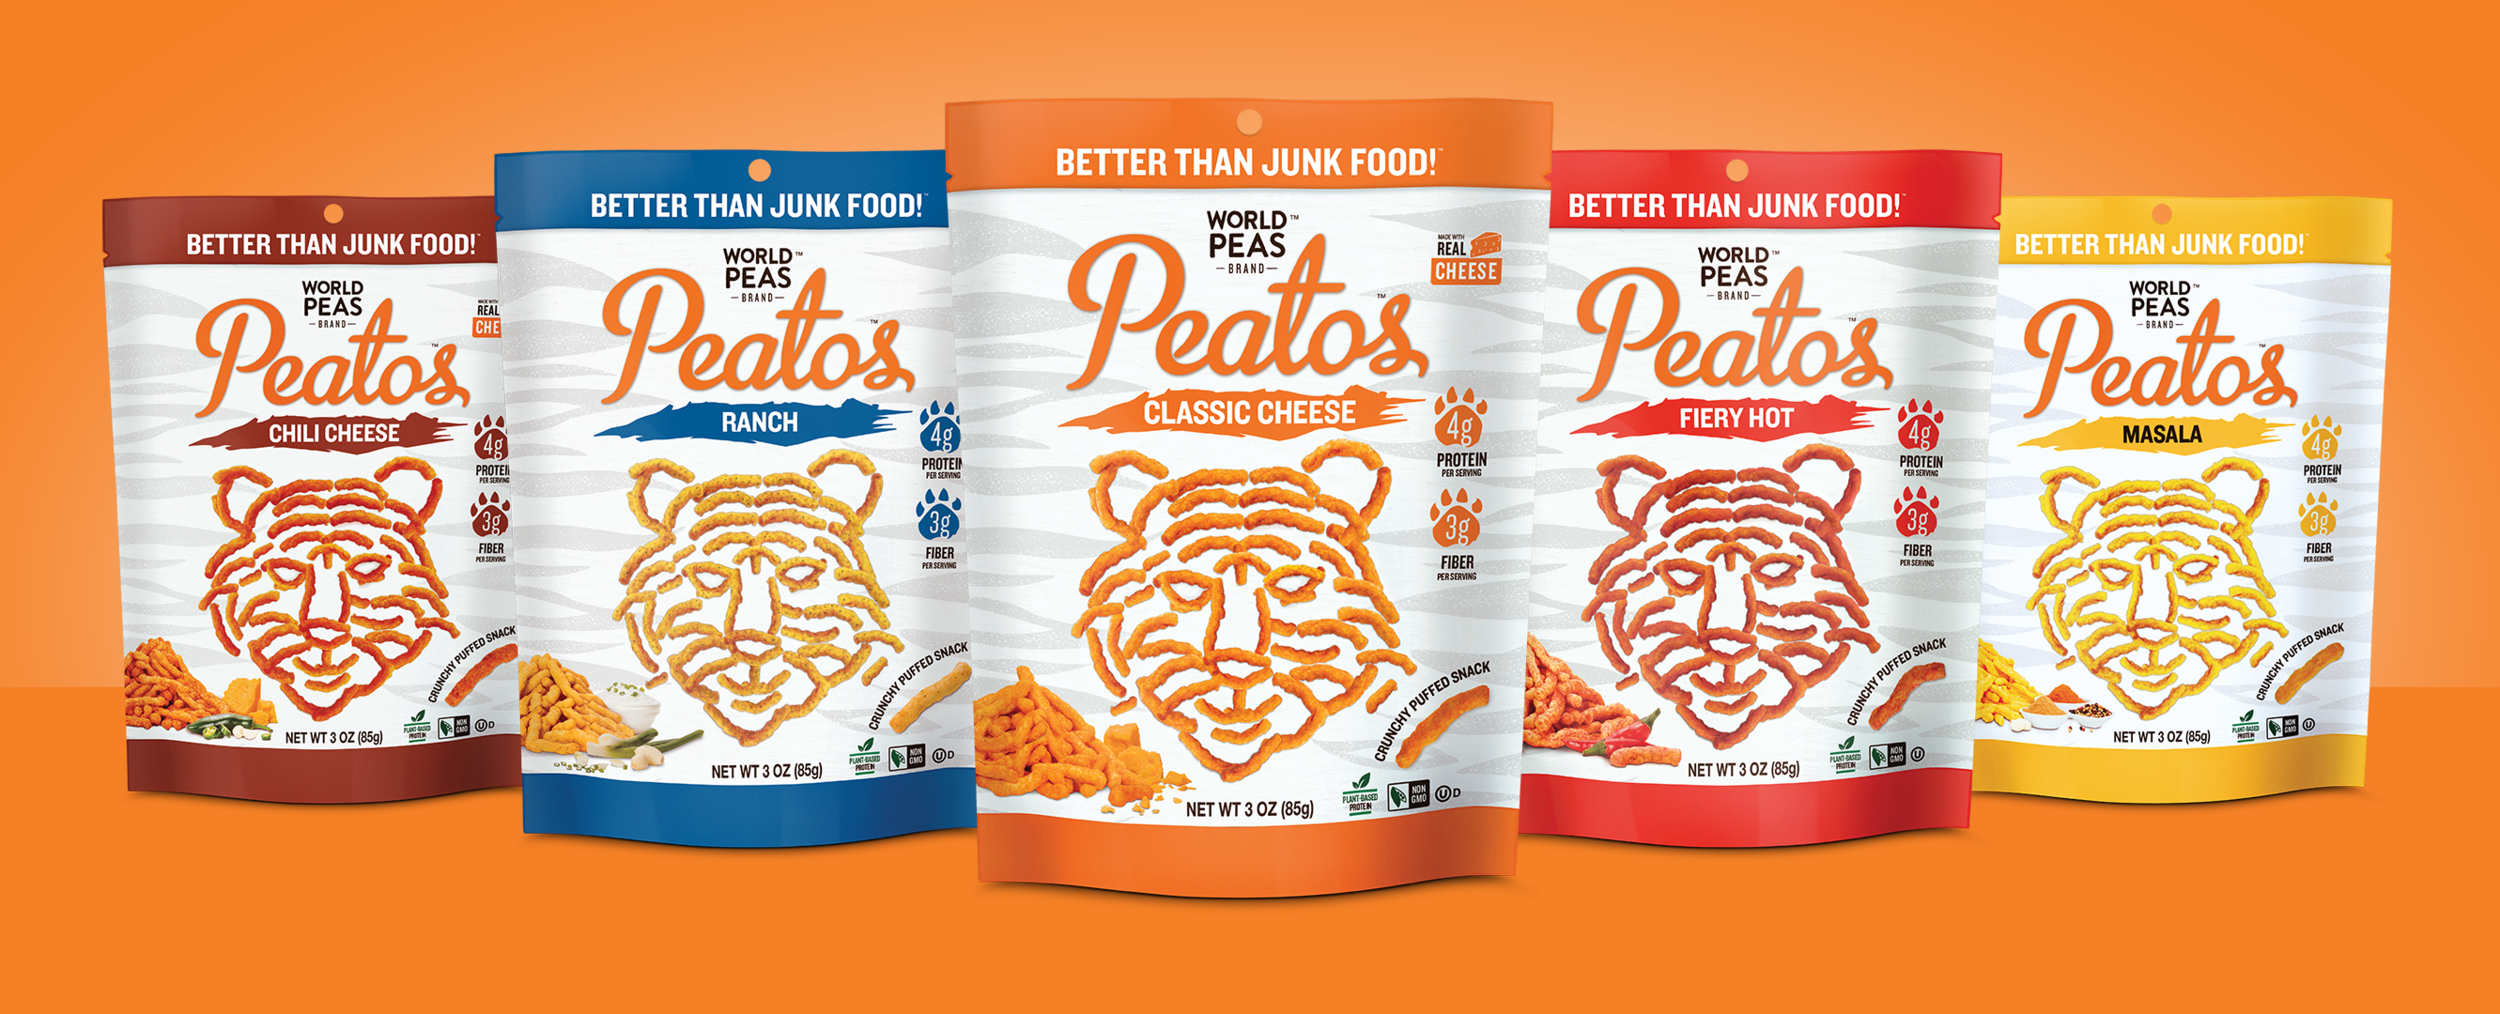 Refreshed CPG packaging design and print production for PEATOS 3oz Bag. Designed packaging mock ups for print and digital display. Illustrator & Photoshop CC.